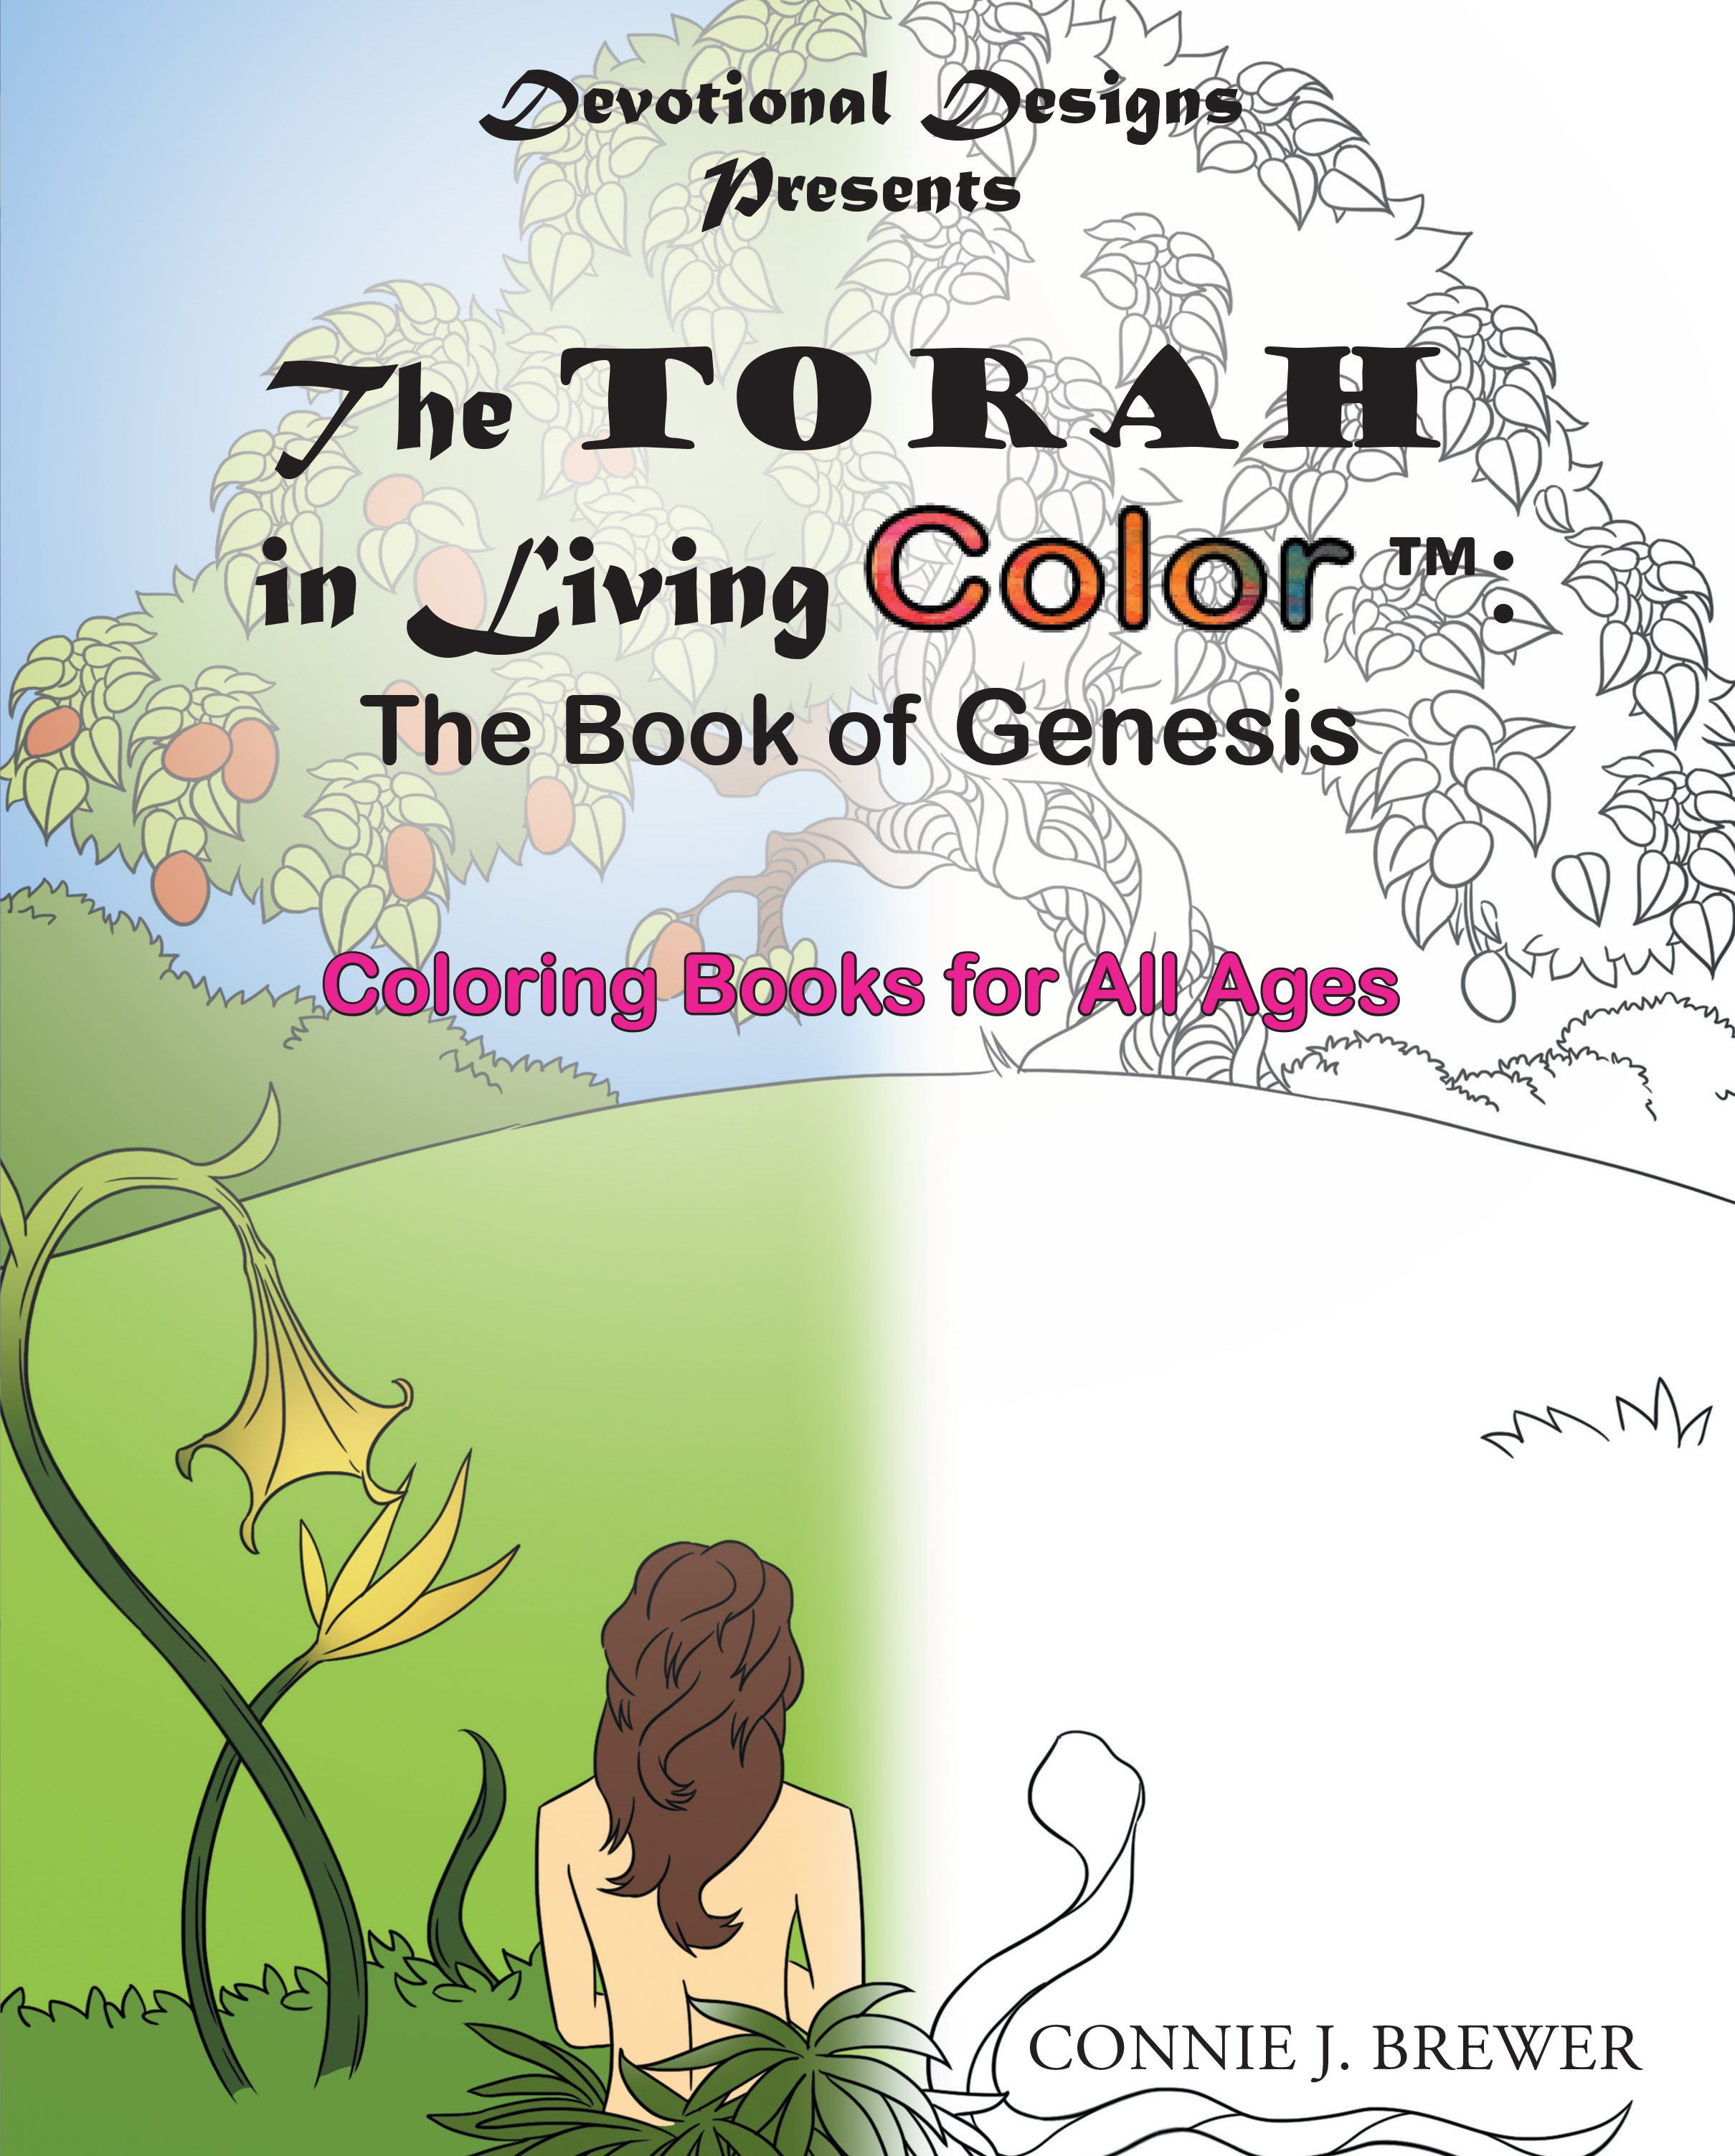 The Torah in Living Color: The Book of Genesis\